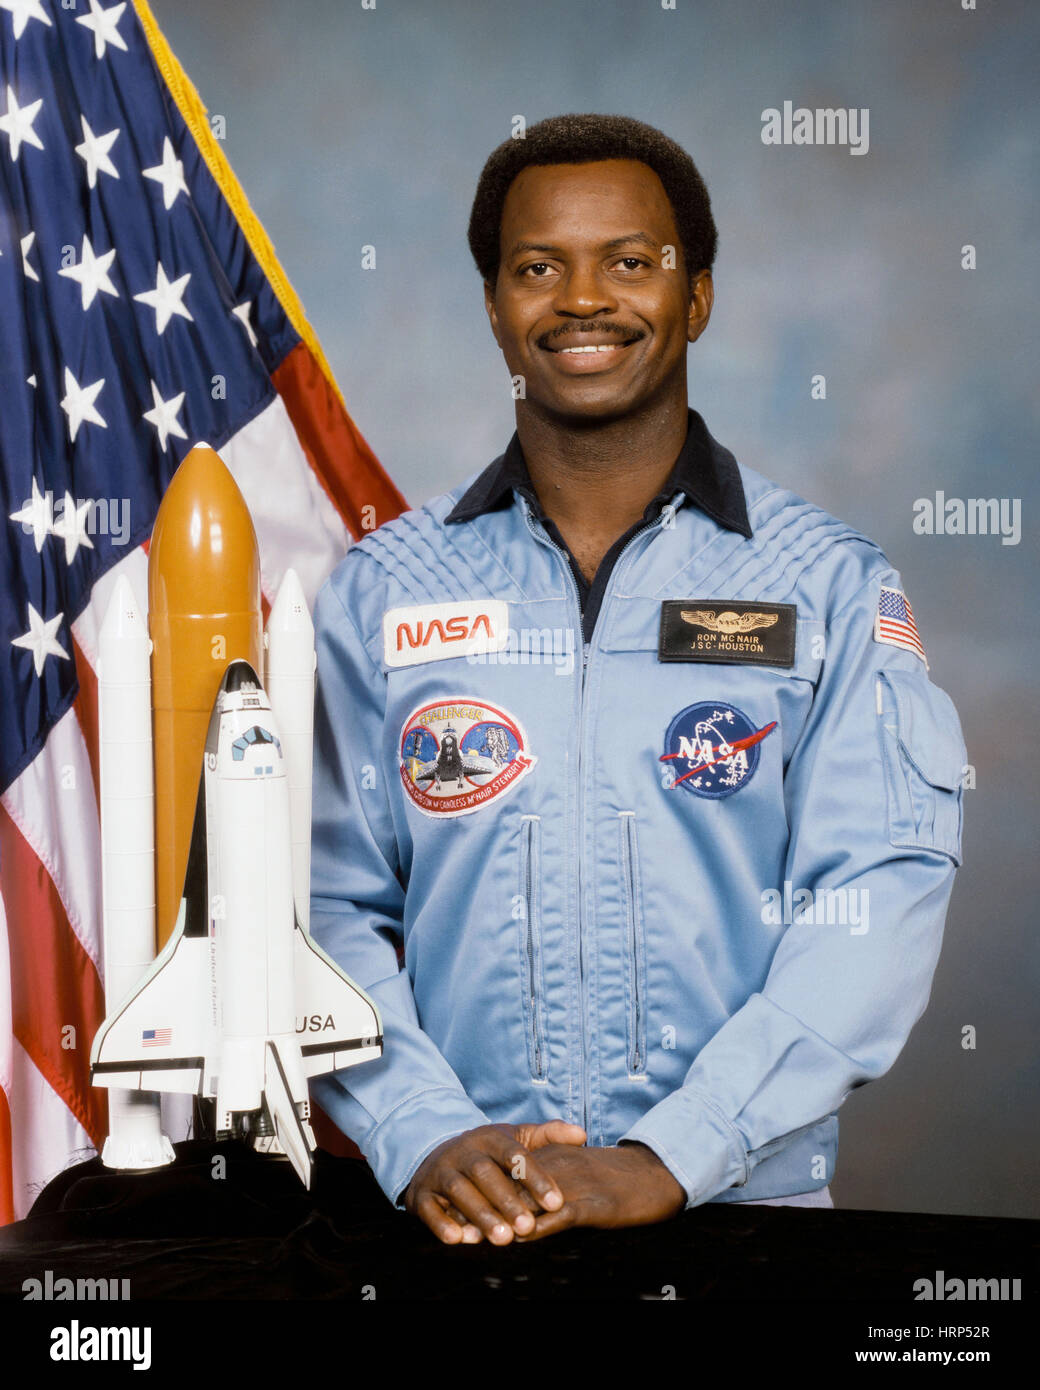 Ronald E. McNair, STS-51L Mission Specialist - Stock Image